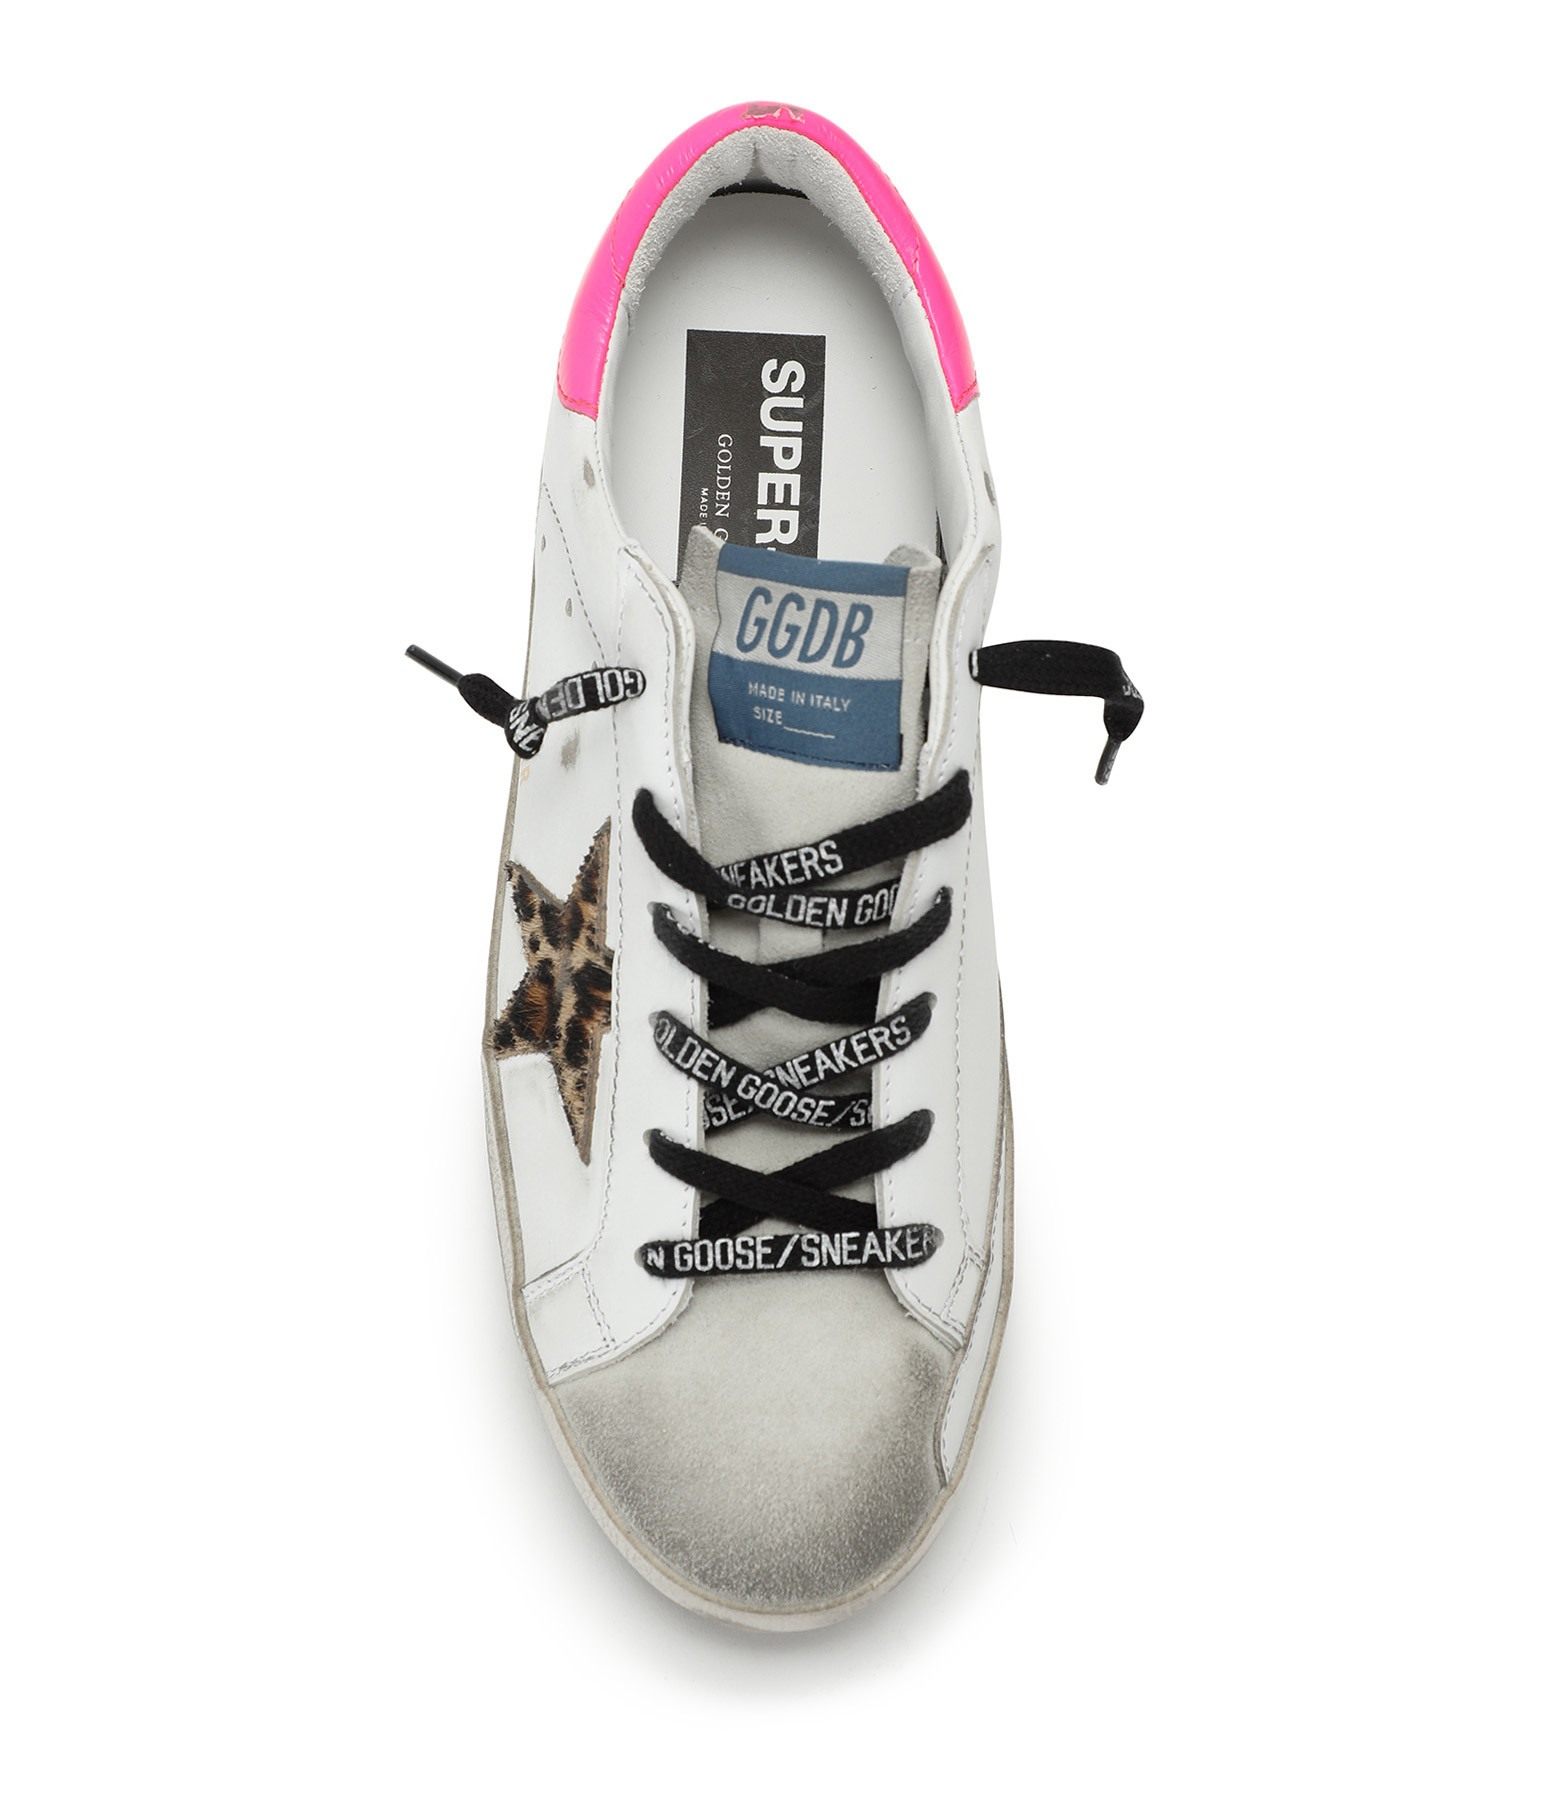 GOLDEN GOOSE - Baskets Superstar Cuir Fushia Fluo Horsy Léopard